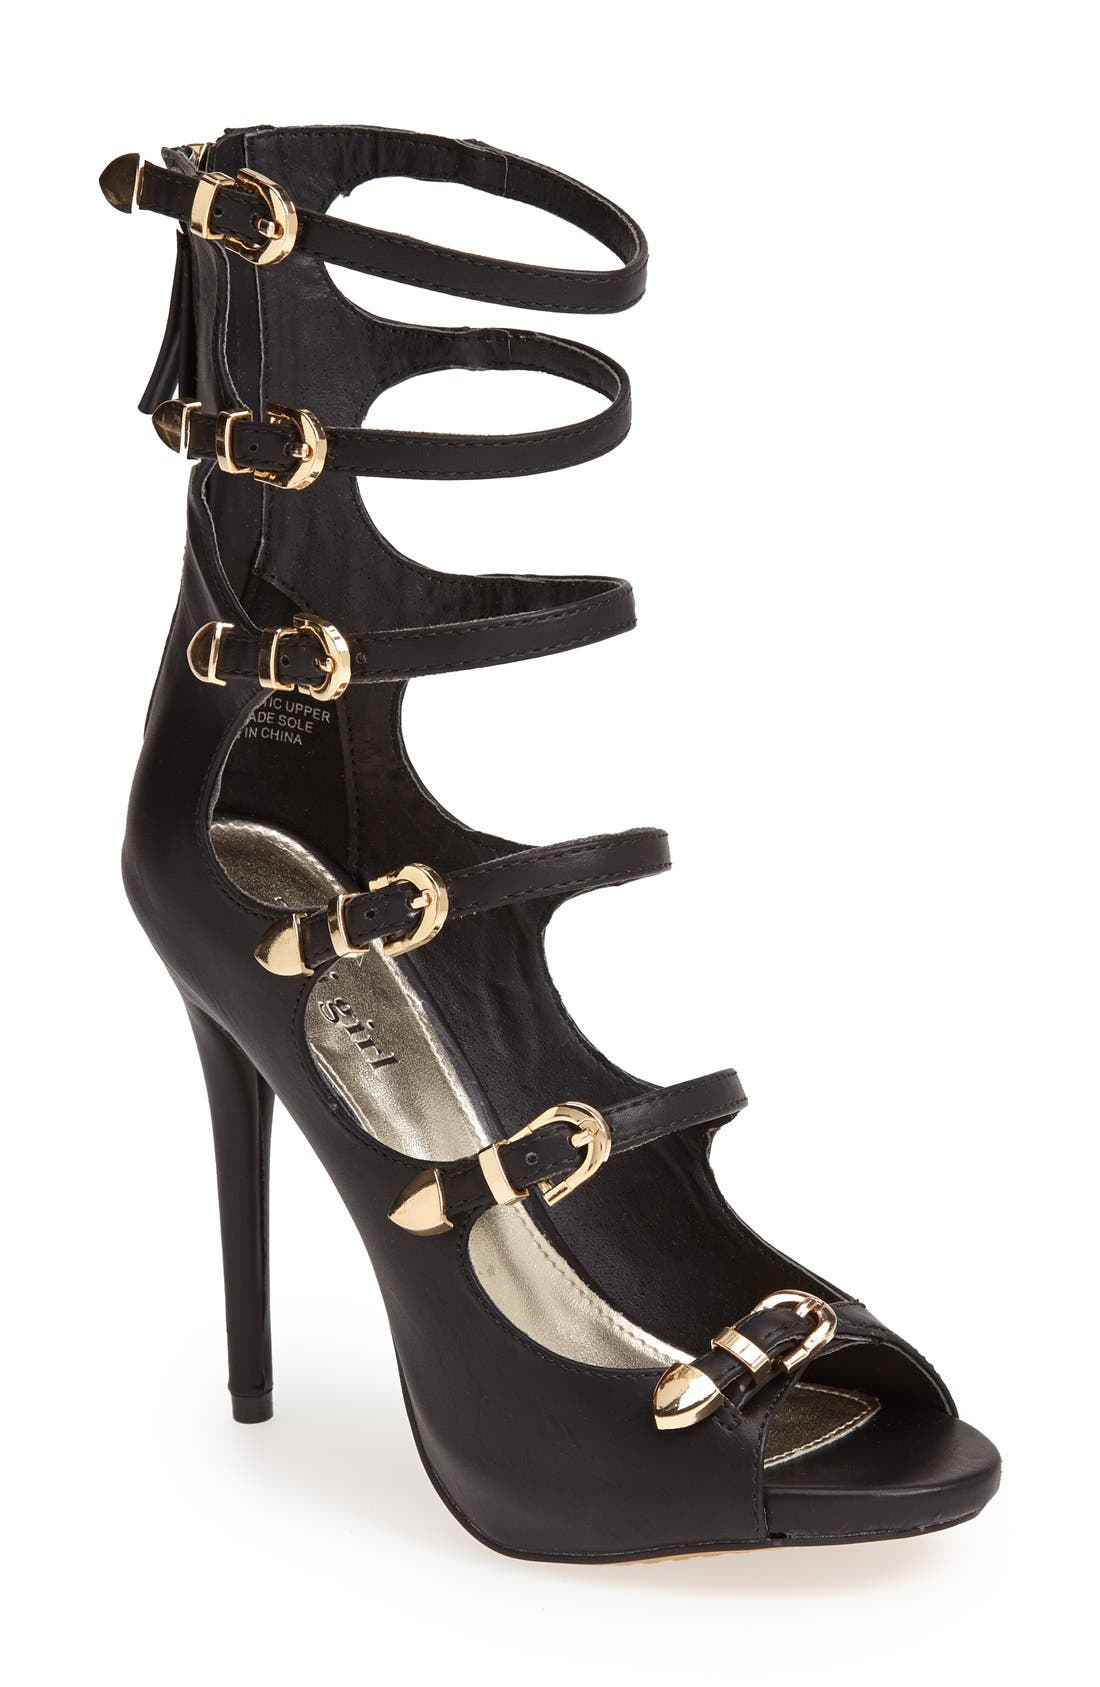 Alternate Image 1 Selected - ZiGi girl 'Idalle' Strappy Sandal (Women)